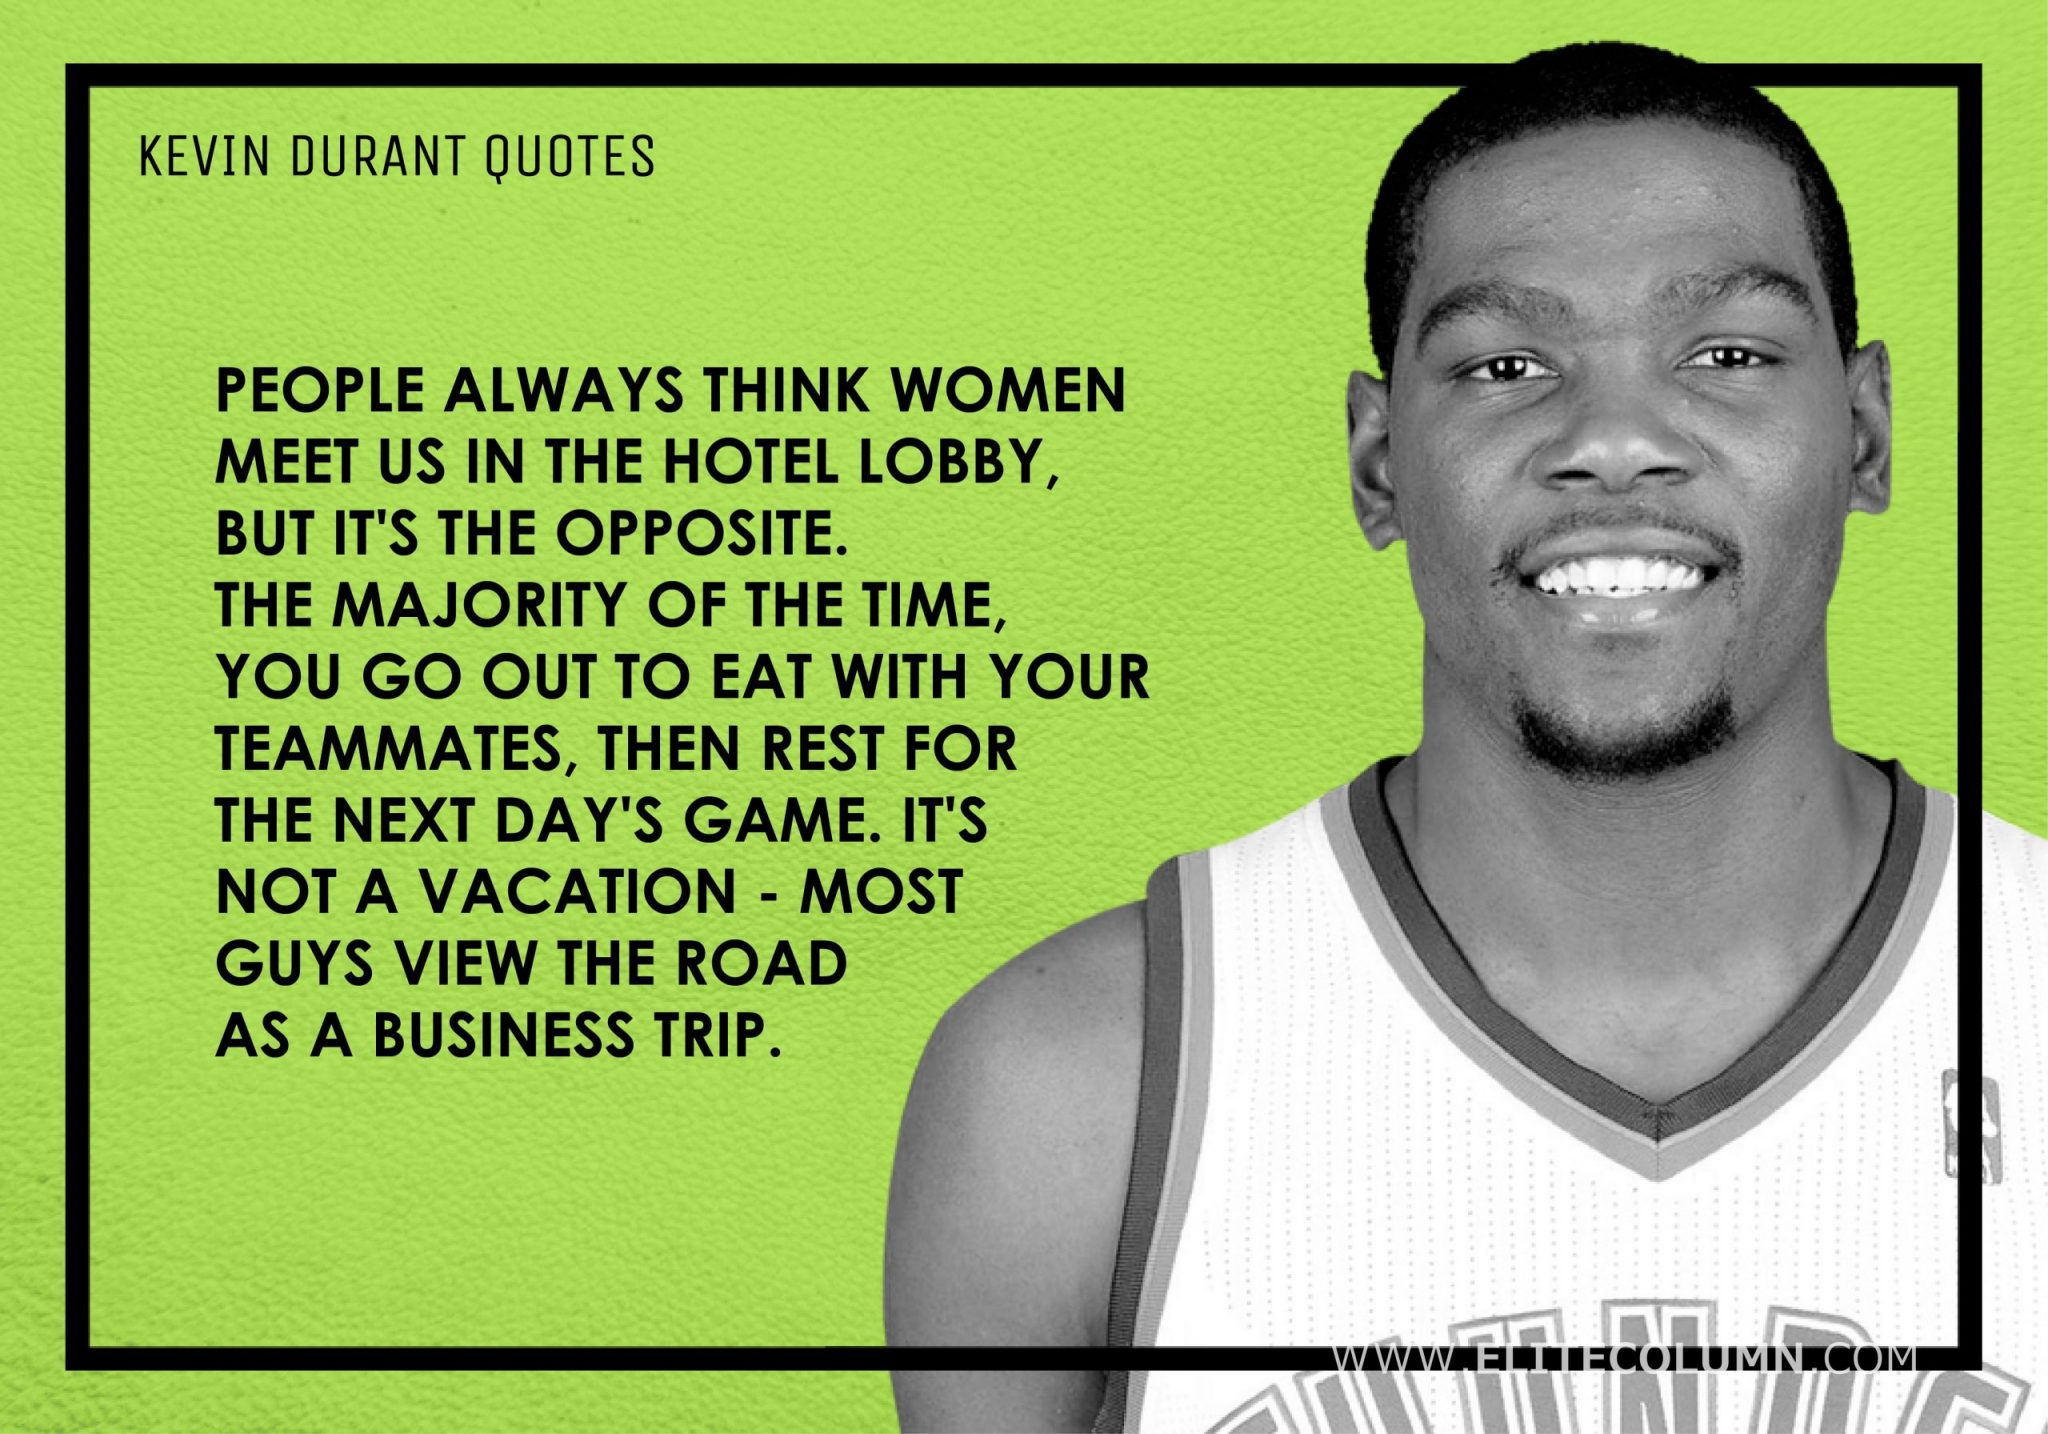 Kevin Durant Quotes (7)